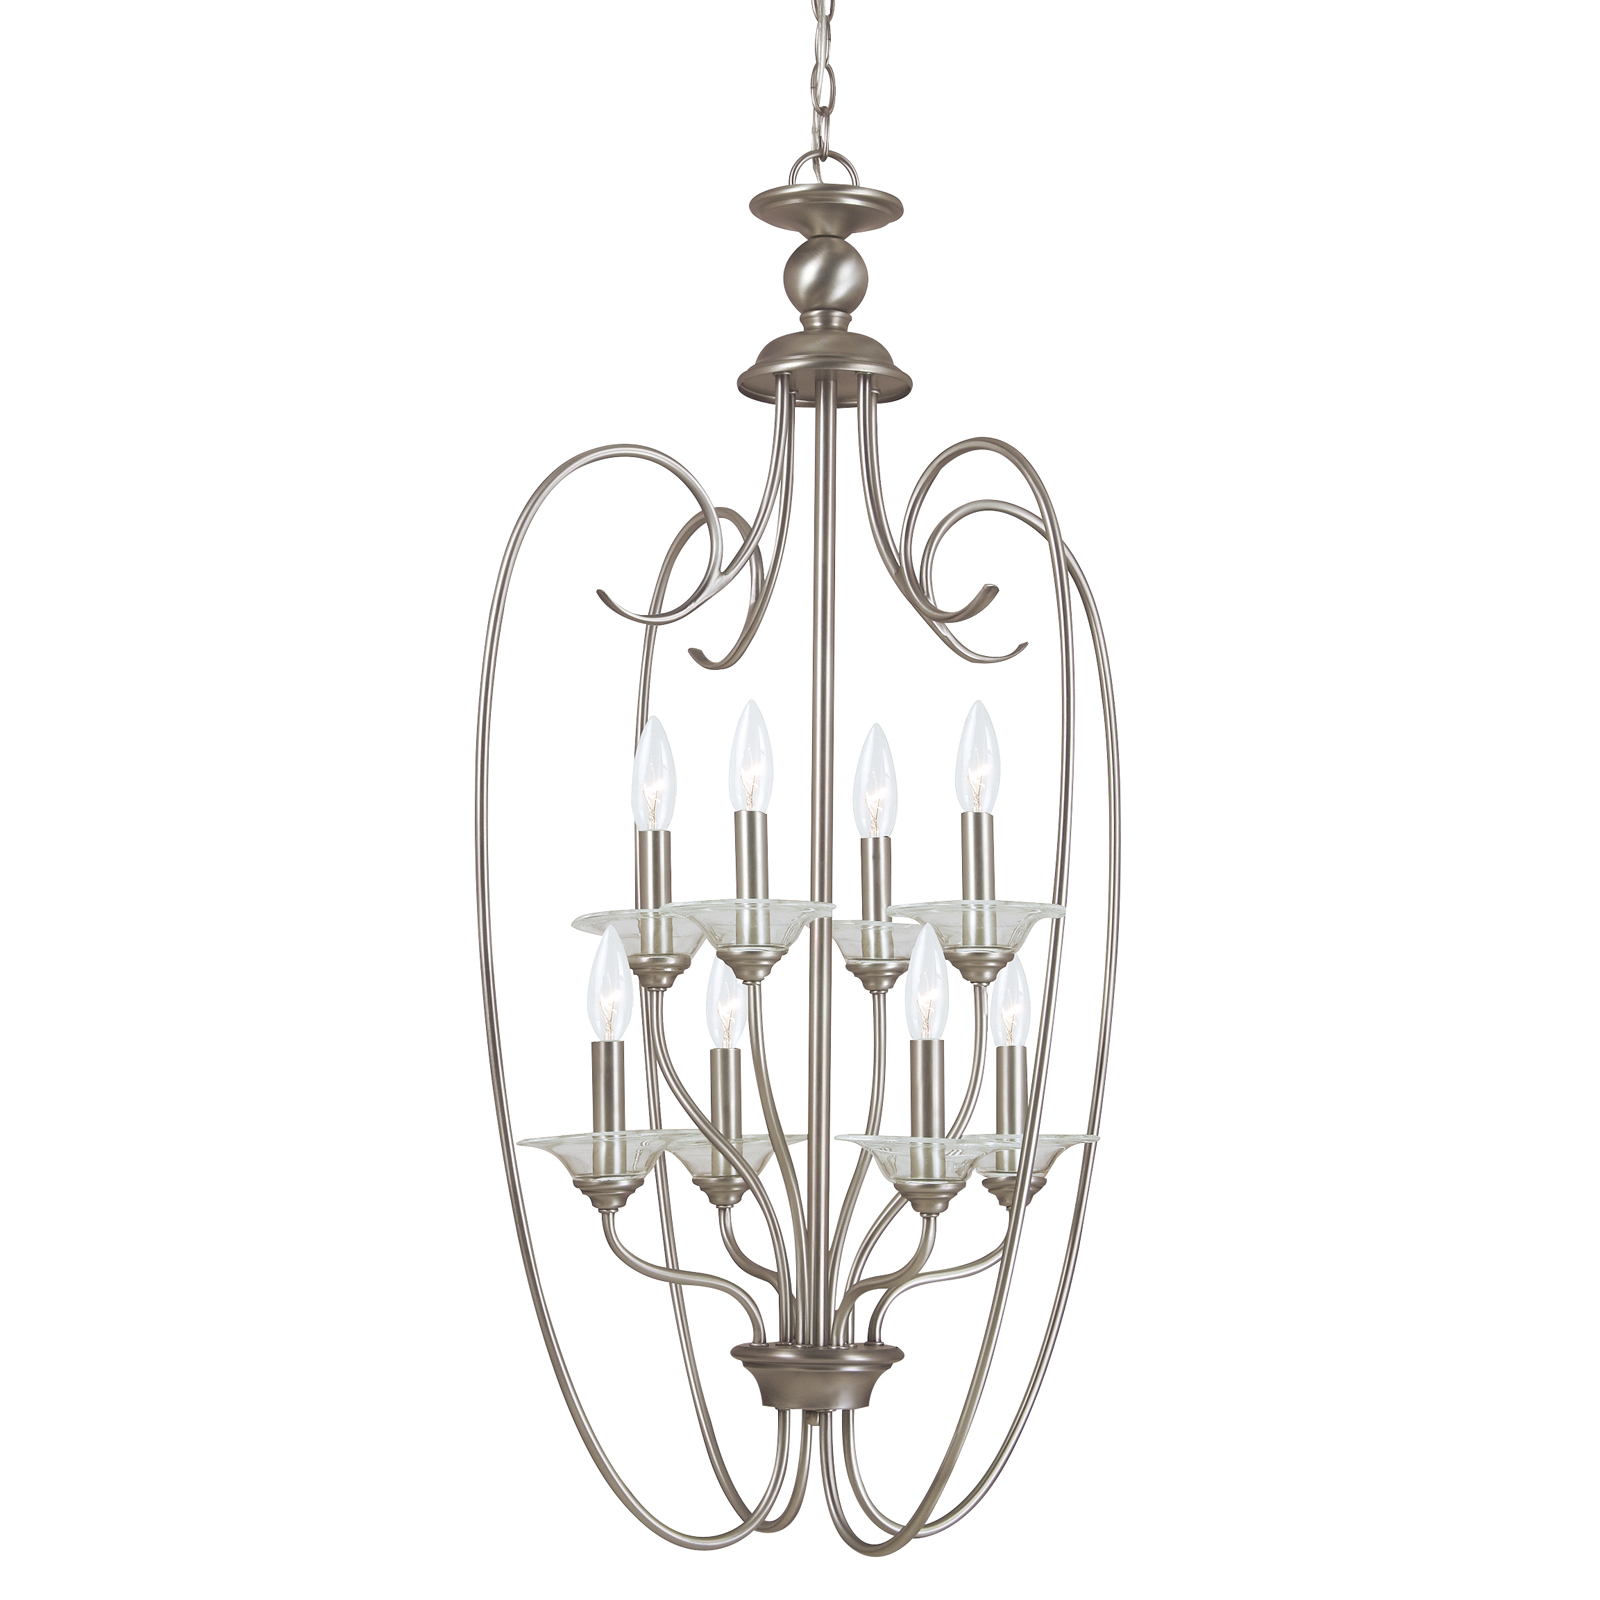 Sea Gull Lighting Lemont 8 Light Candelabra Hall Foyer